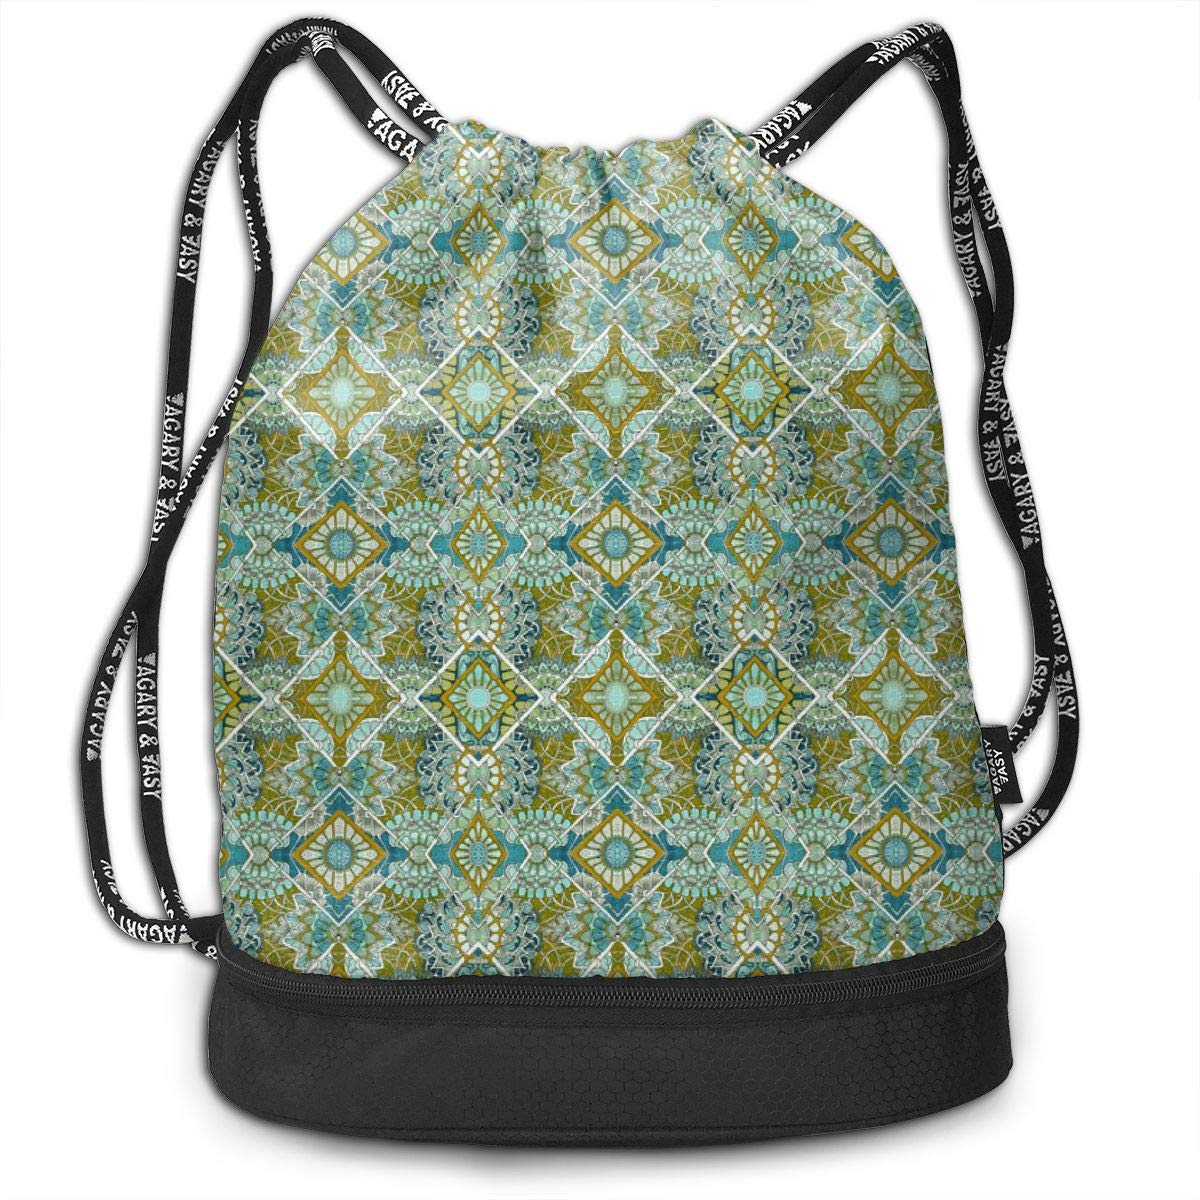 Flowers Everywhere Teal Gold Drawstring Backpack Sports Athletic Gym Cinch Sack String Storage Bags for Hiking Travel Beach